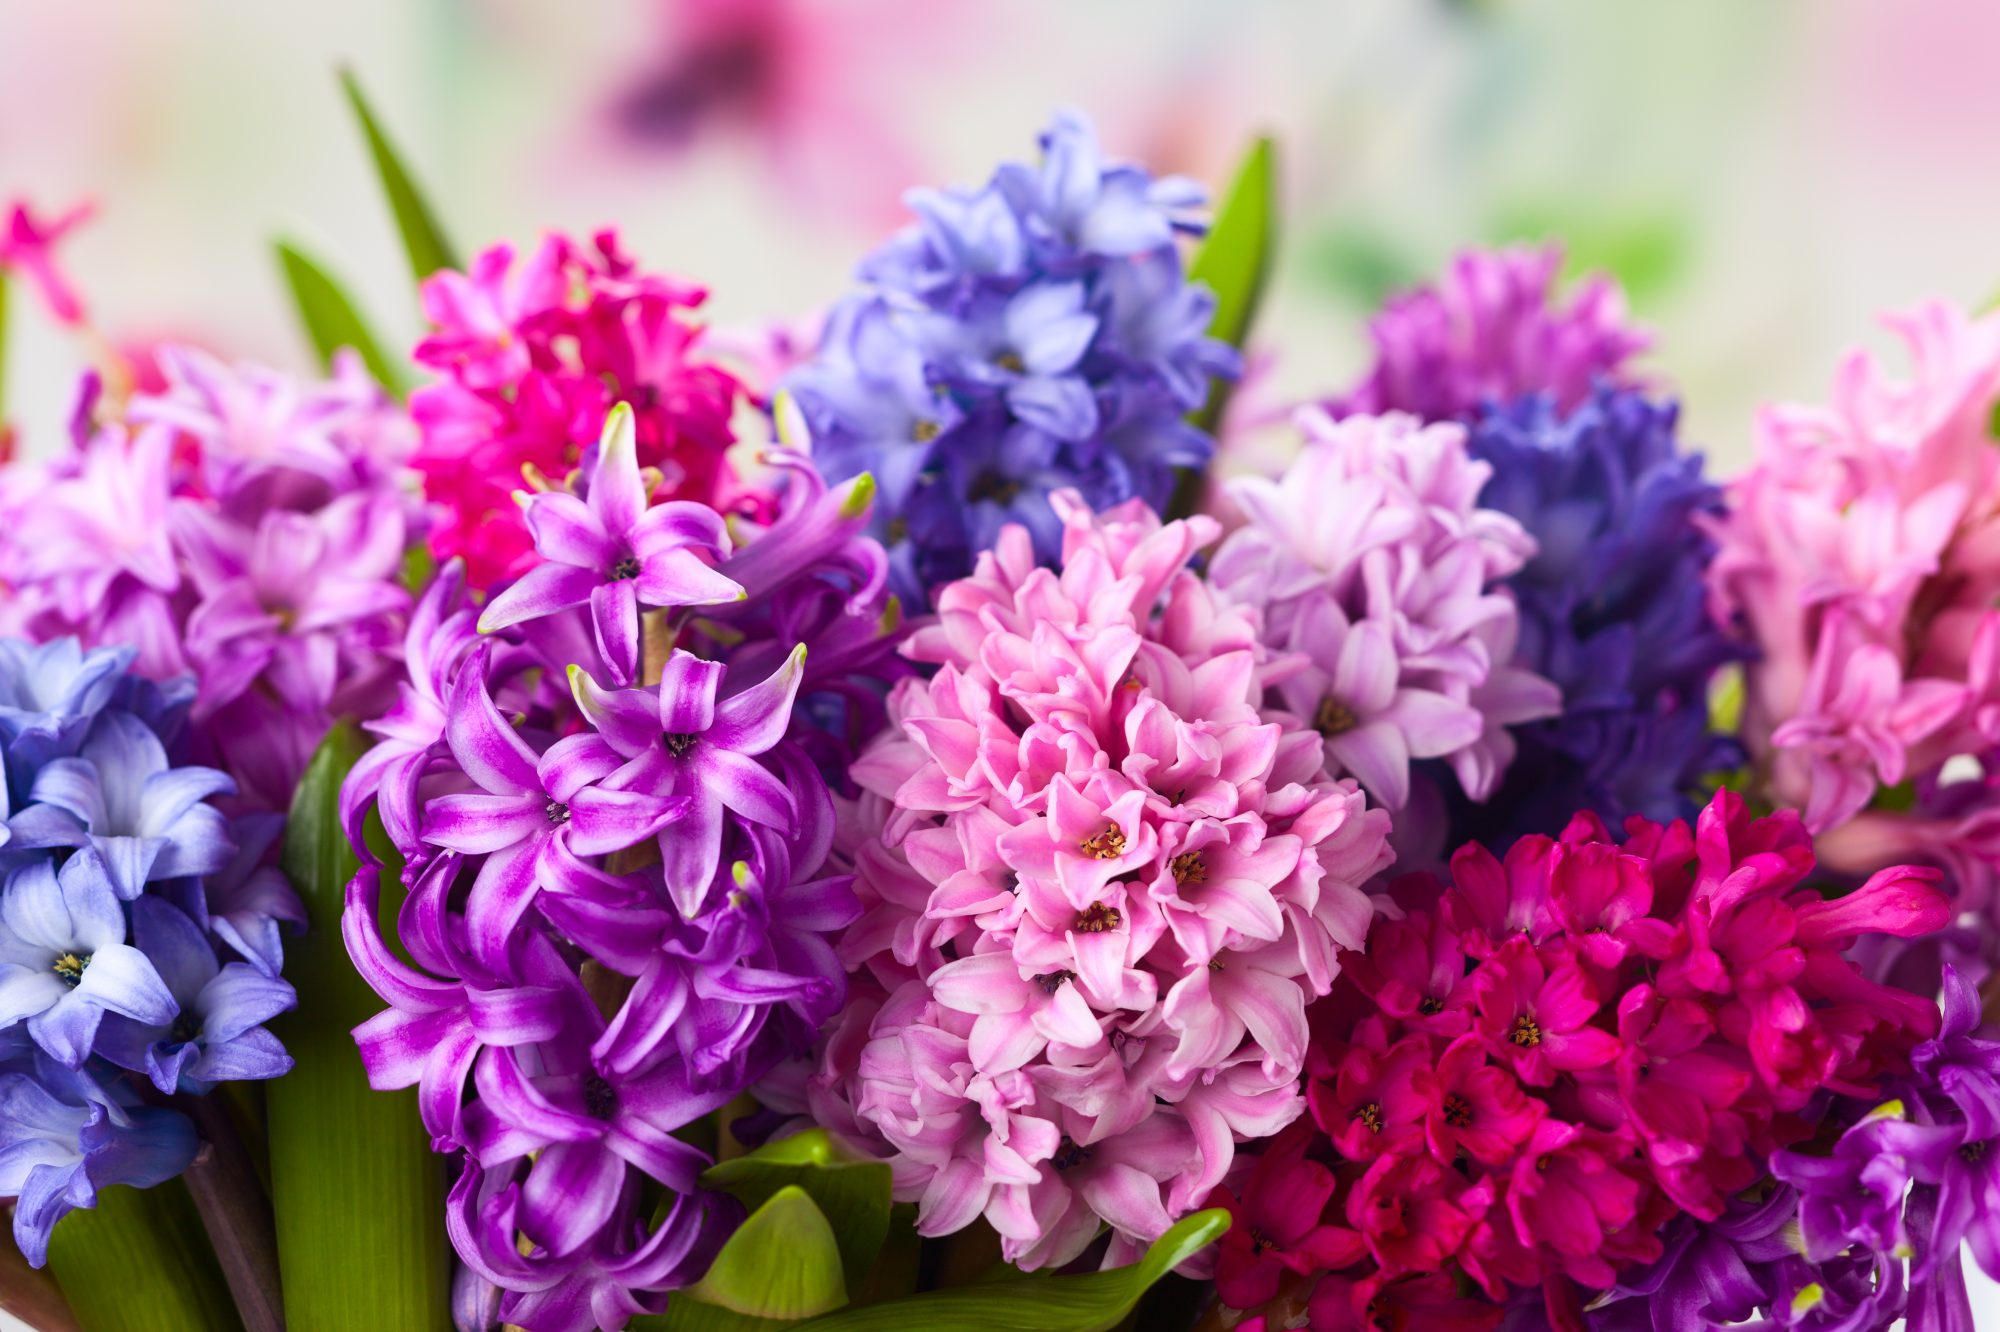 The Complete Guide to Growing Hyacinths